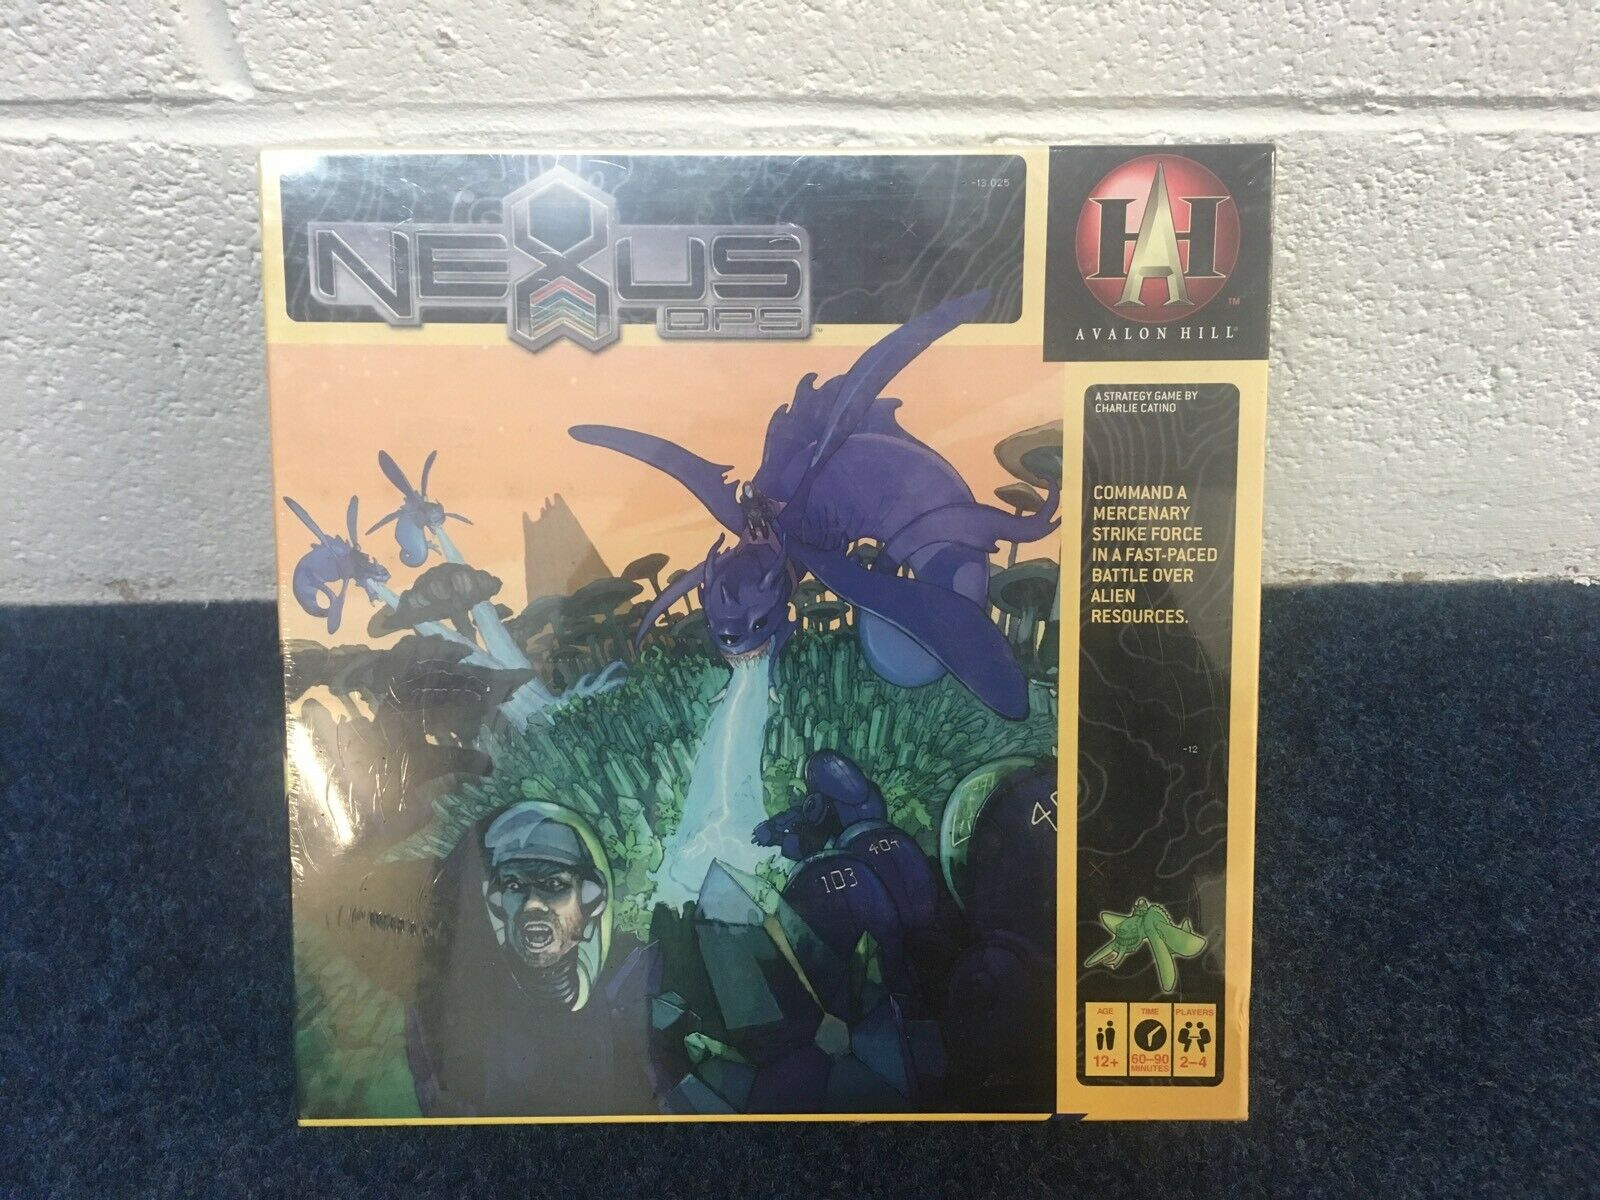 NEXUS OPS by Avalon Hill Games 1st edition Board Game of alien wars NEW & SEALED